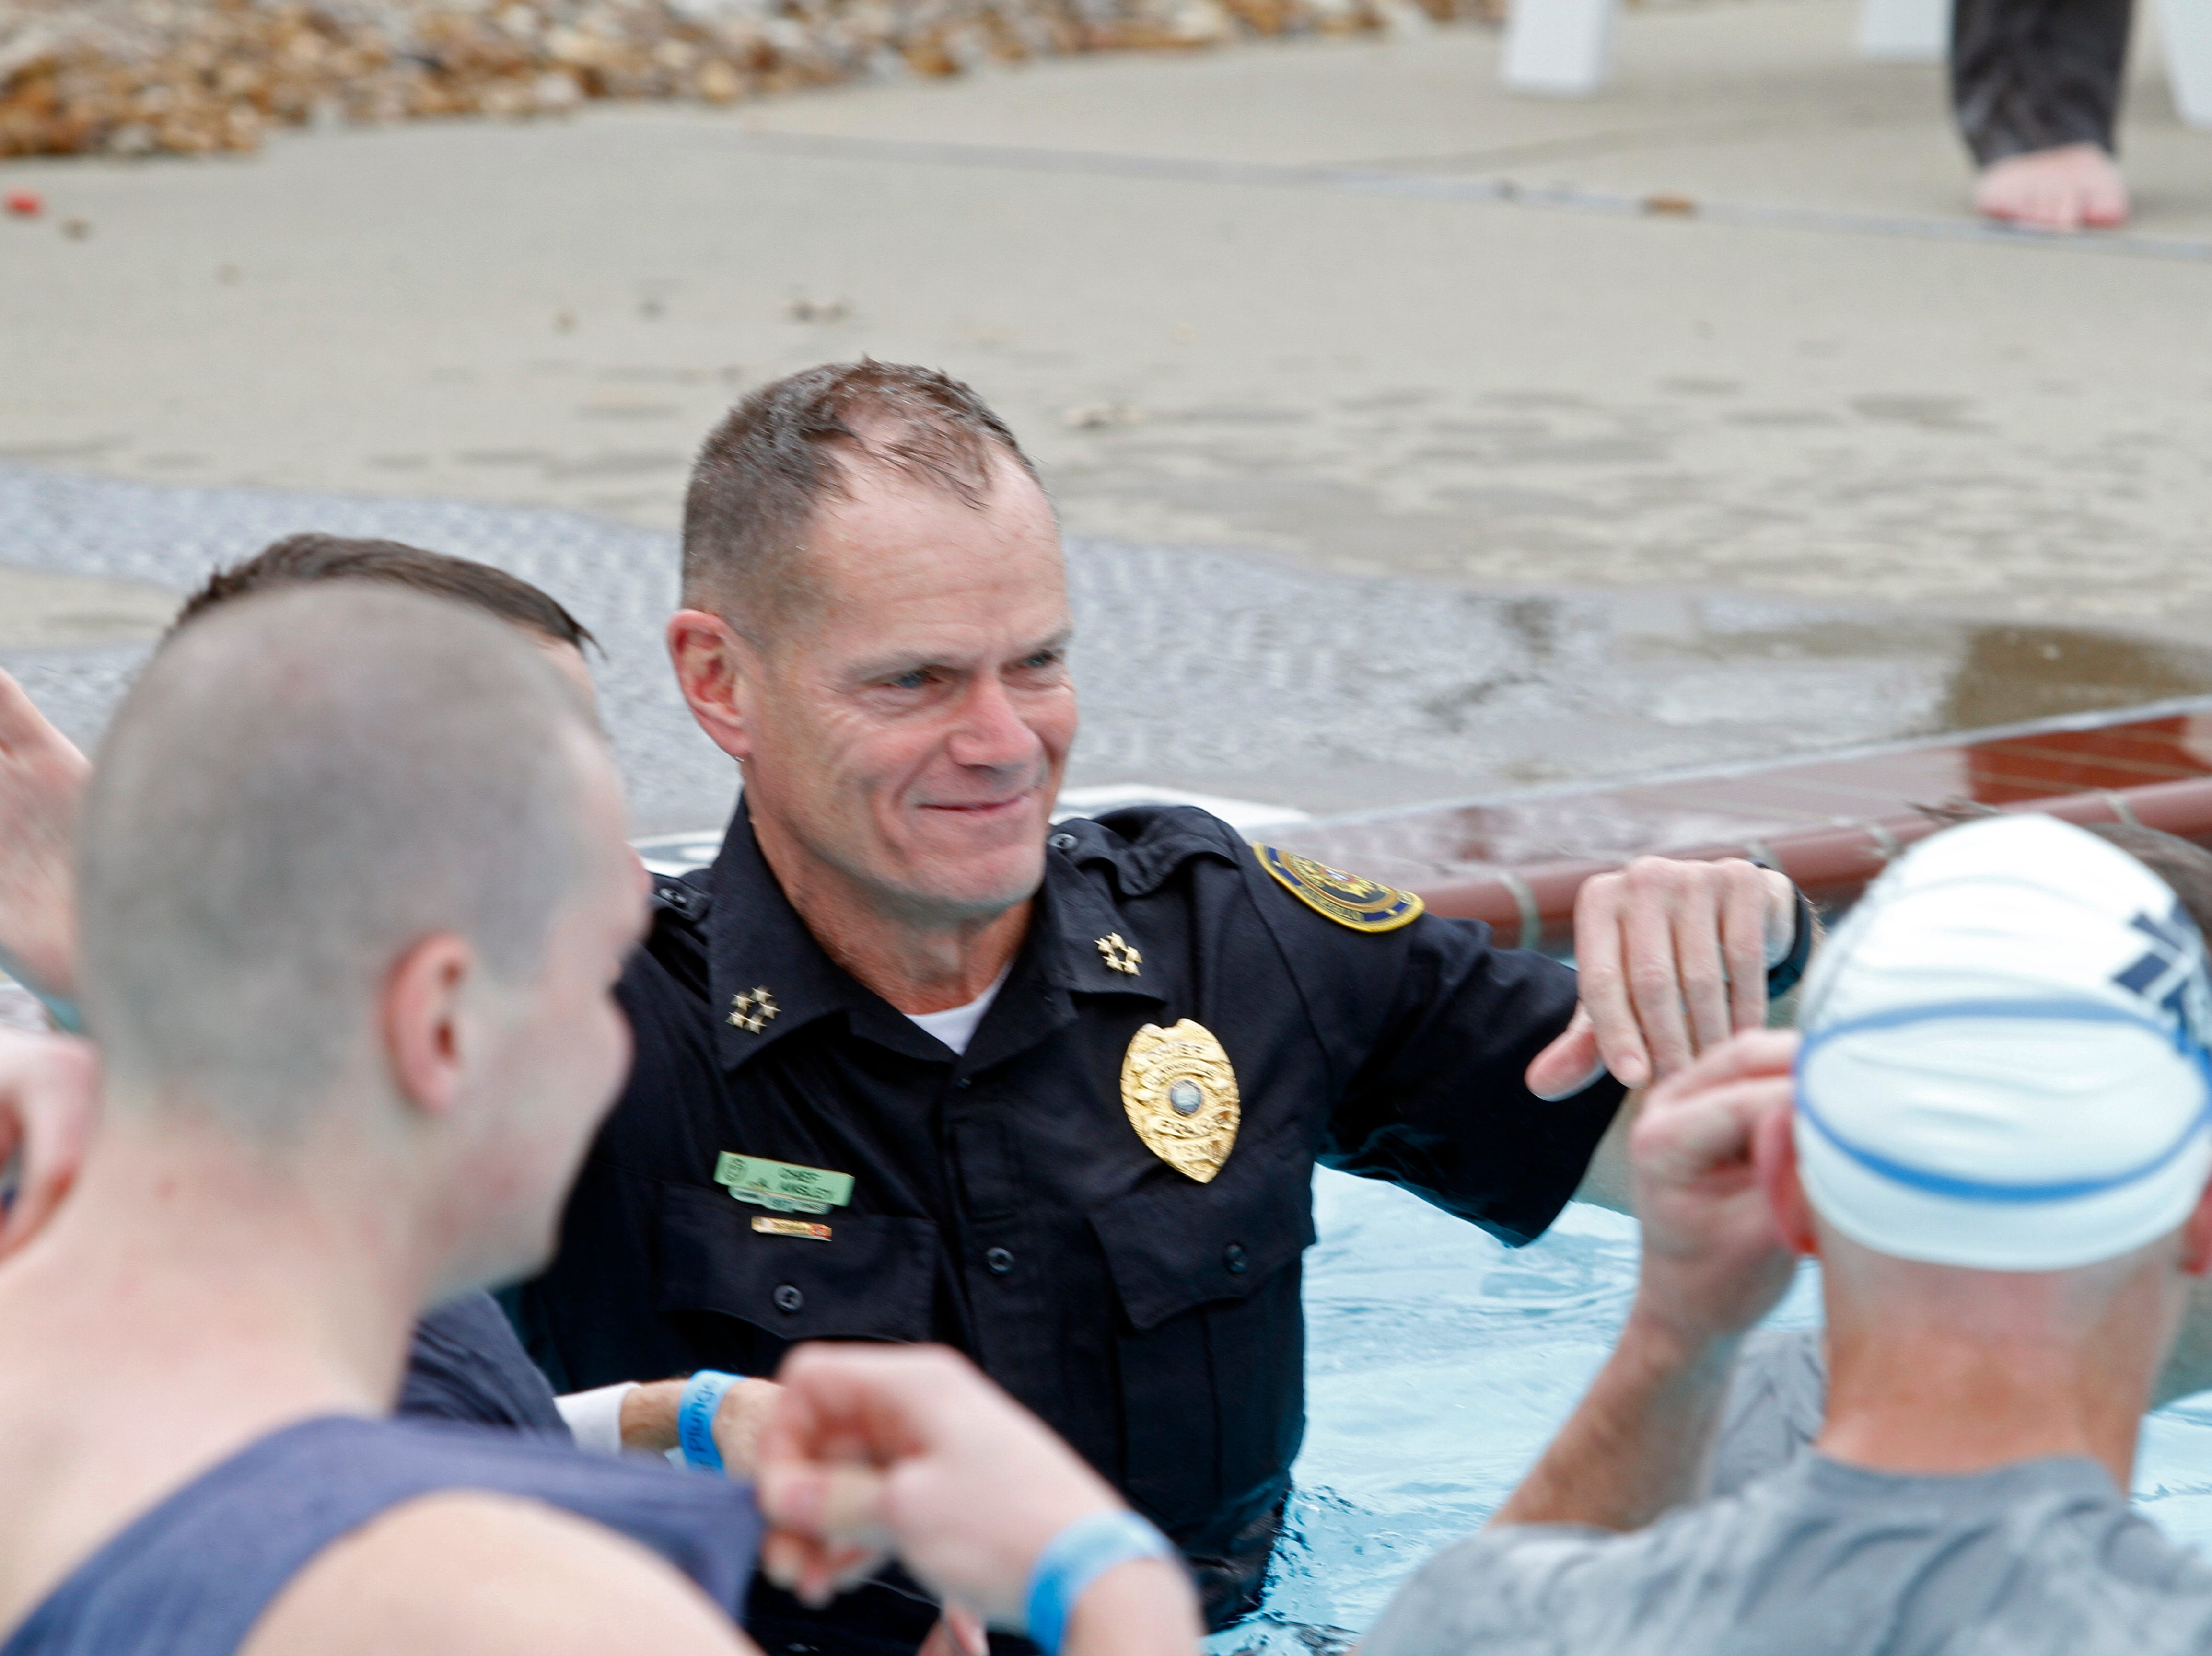 CPD Chief Al Ainsley plunged in full uniform during the Special Olympics Polar Plunge at APSU on Saturday, Feb. 1, 2019. More than $10,000 was raised at this year's event.